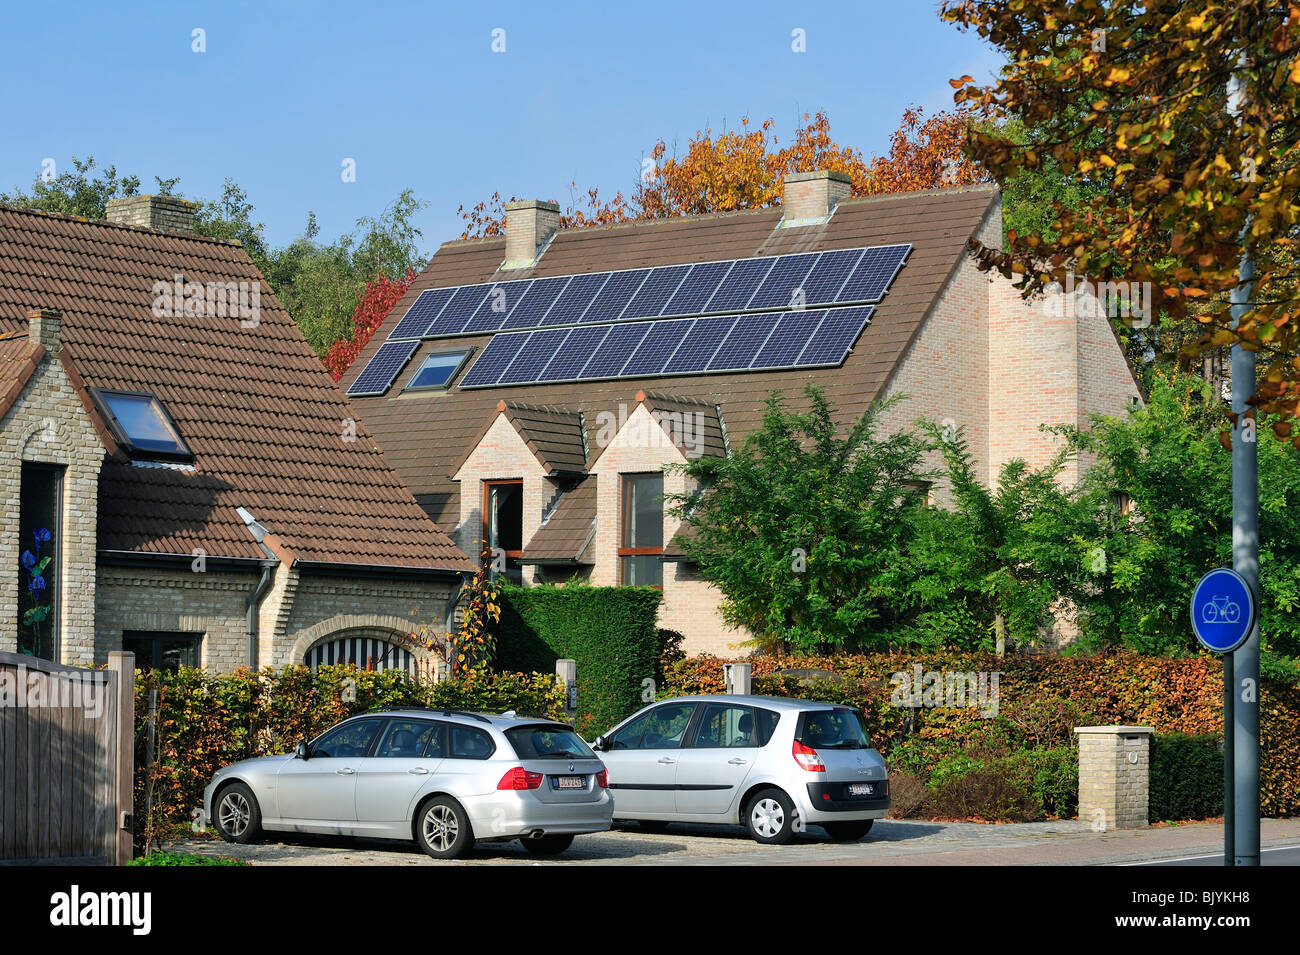 Photovoltaic solar panels on roof of house - Stock Image